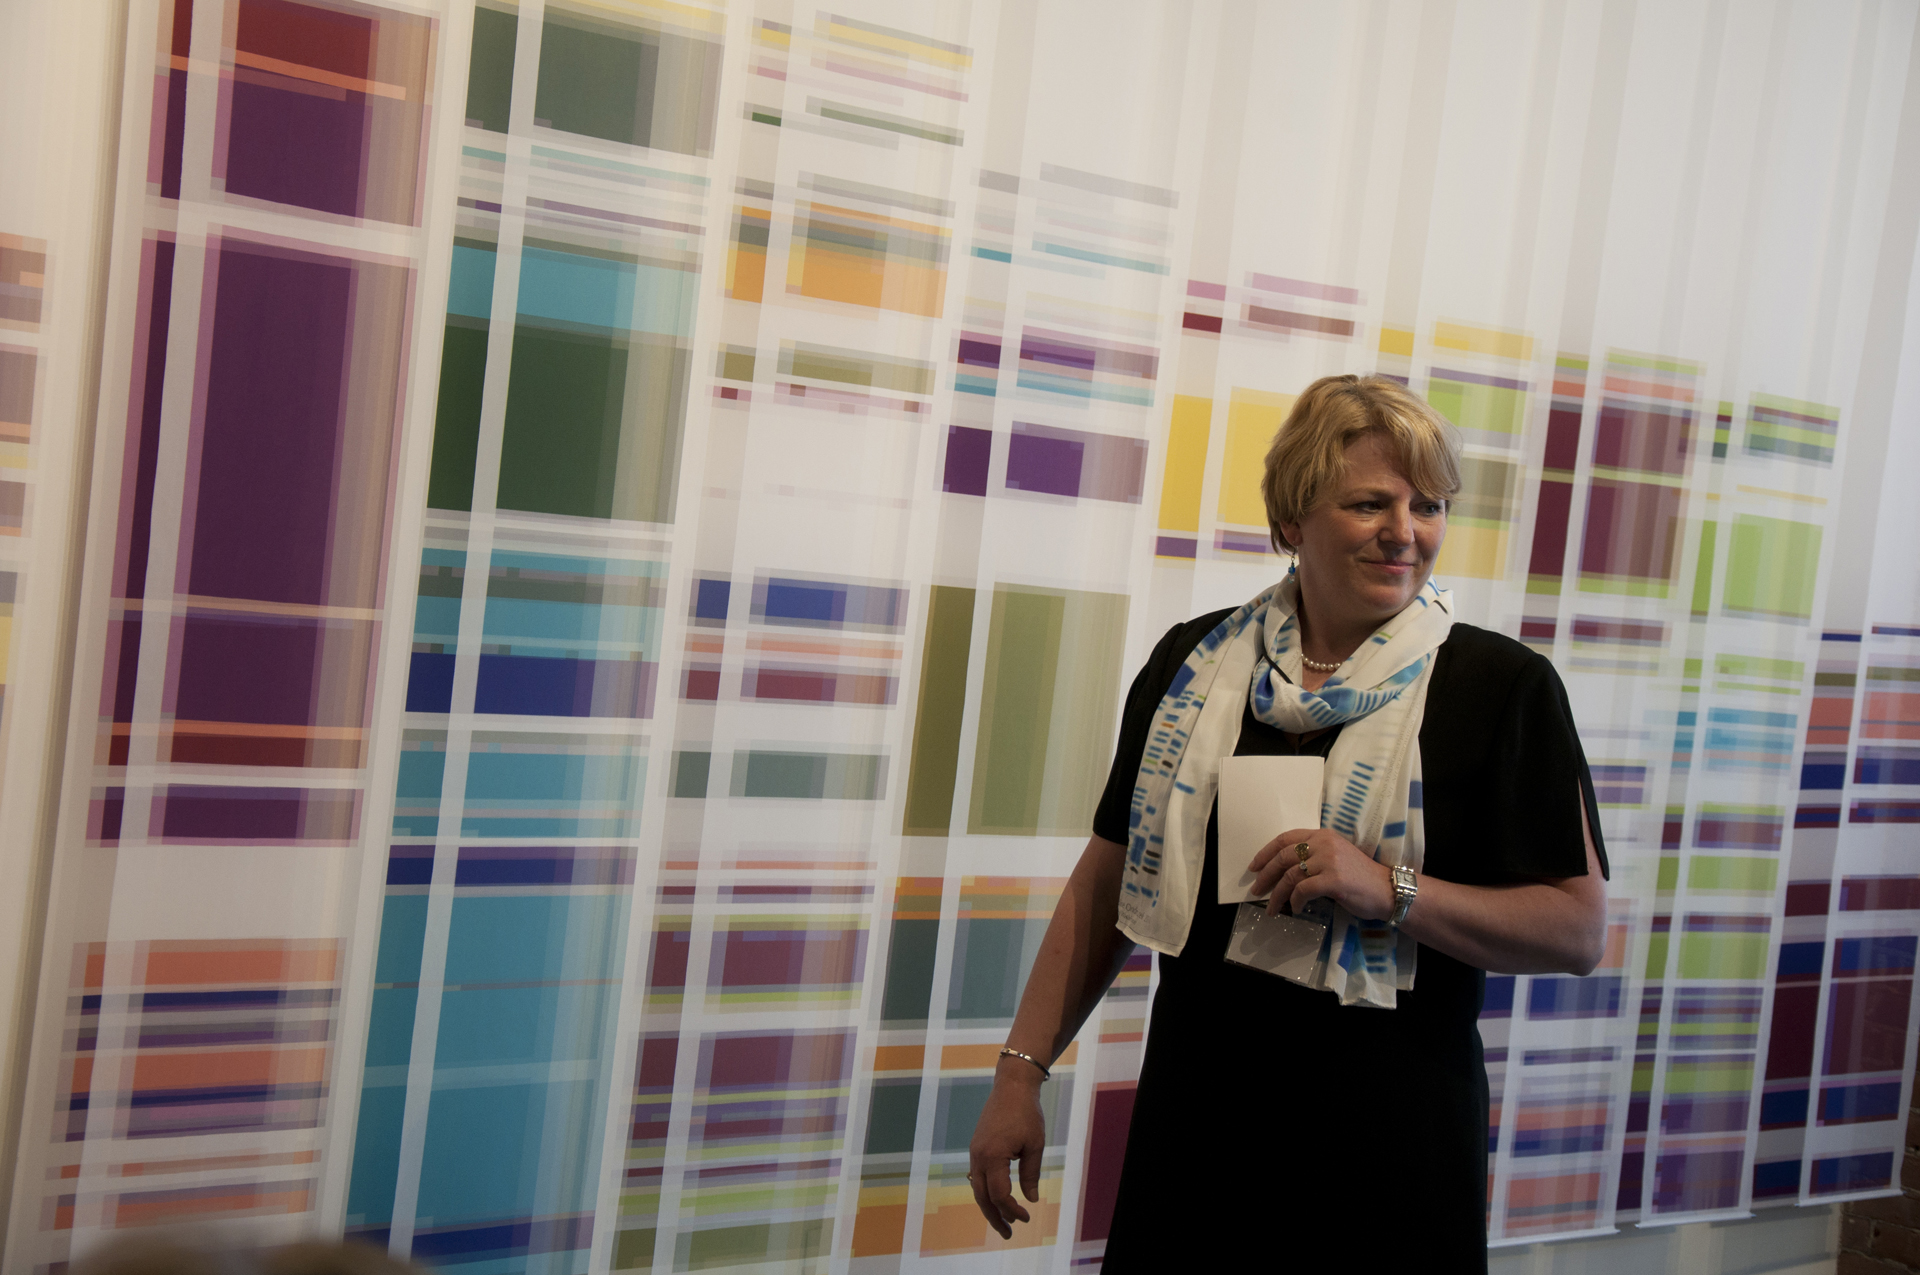 Robin Bennett, UW Genetic Medicine Clinic co-director, wears a Chromosome 17 silk scarf in front of the Chromosome Painting studio installation by Geraldine Ondrizek, 2012